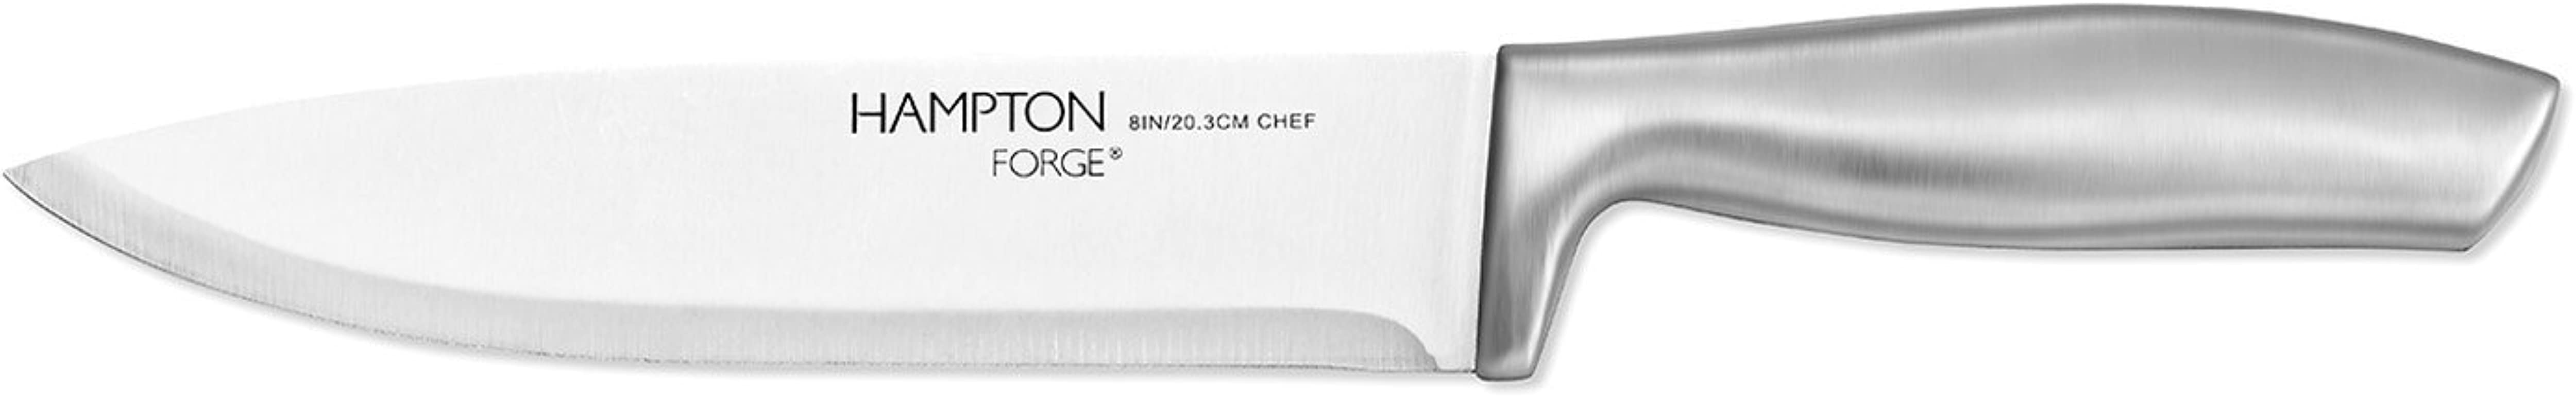 Hampton Forge HMC01A455G Kobe Chef Knife Silver